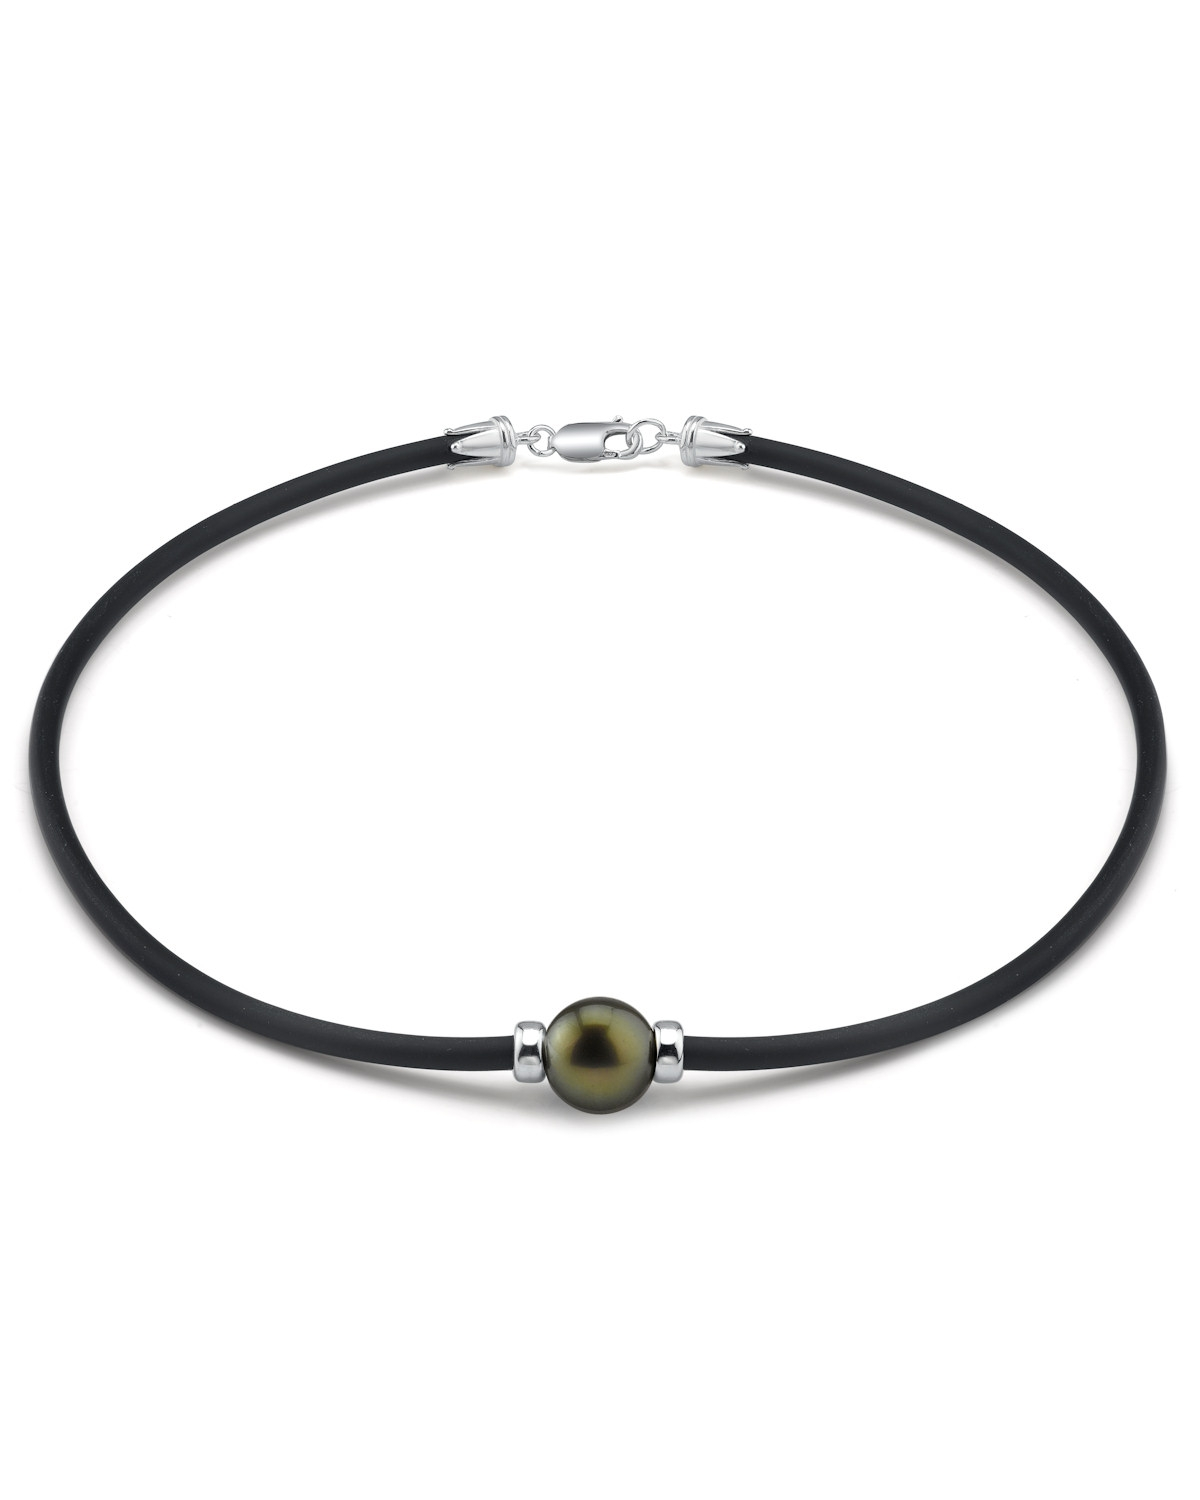 11mm Tahitian Round Cultured Pearl Necklace by The Pearl Source